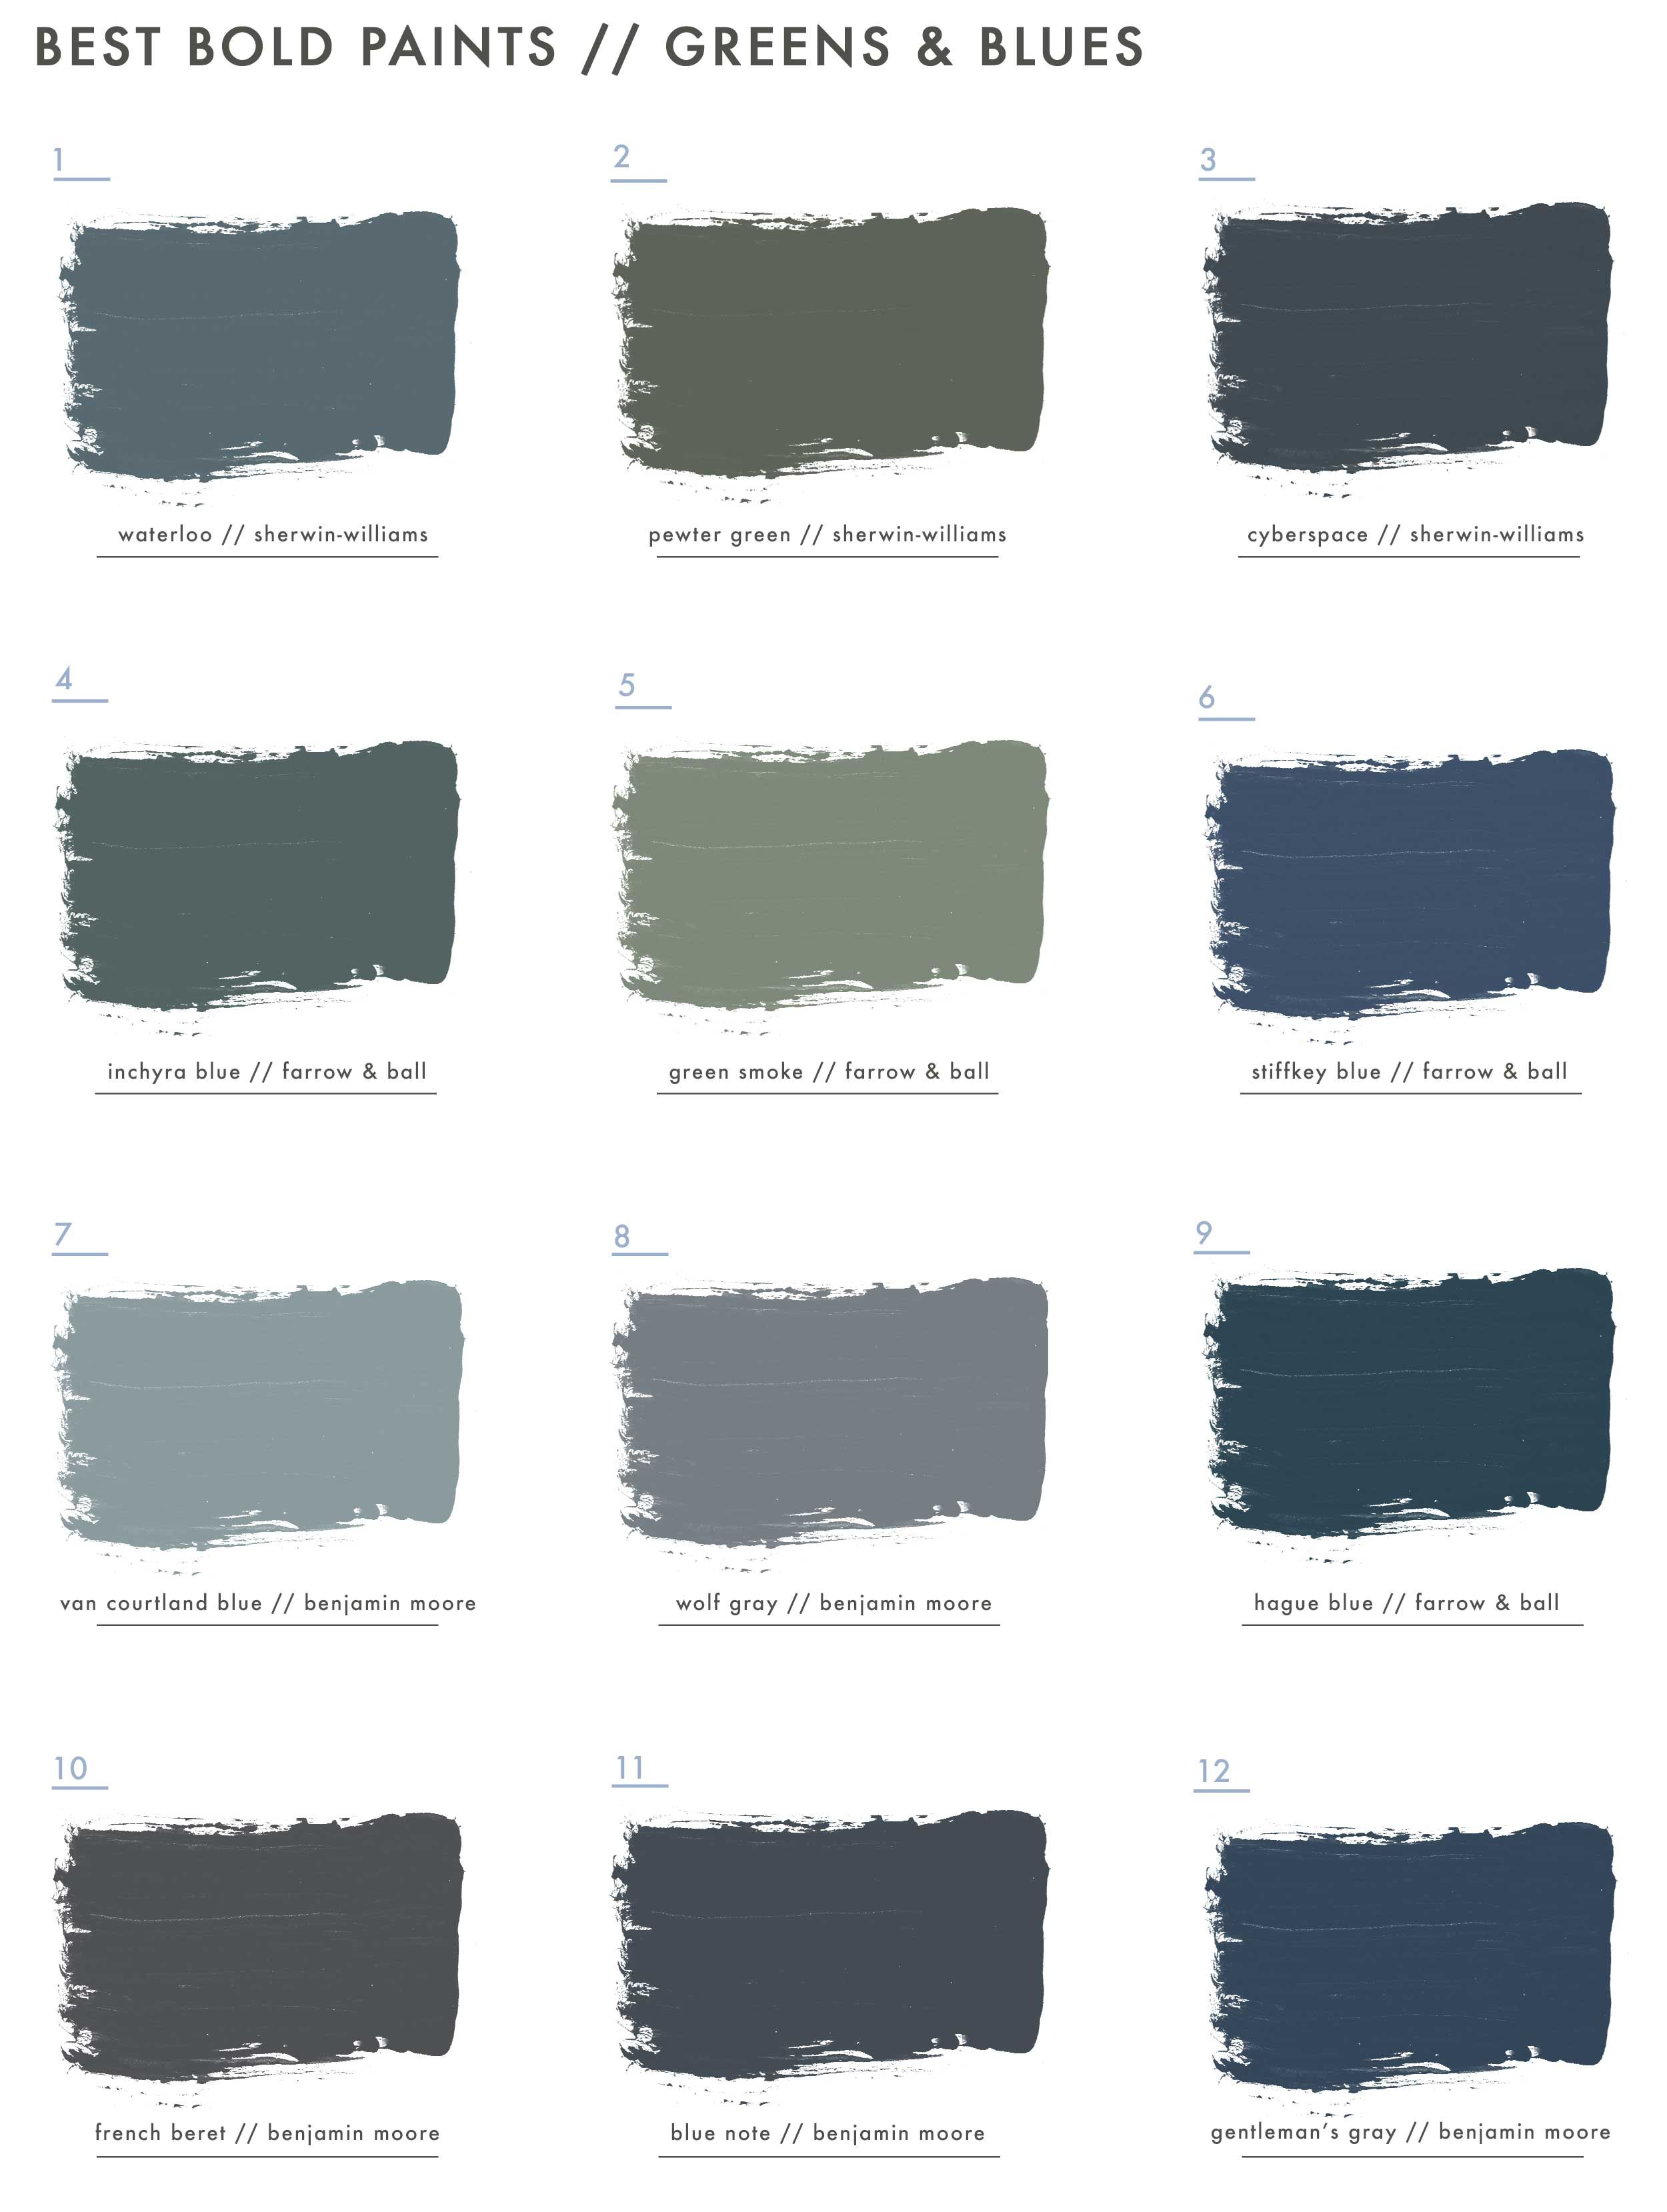 Pin By Emily Henderson On My Stuff Blue Green Paints Green Paint Colors Green Paint